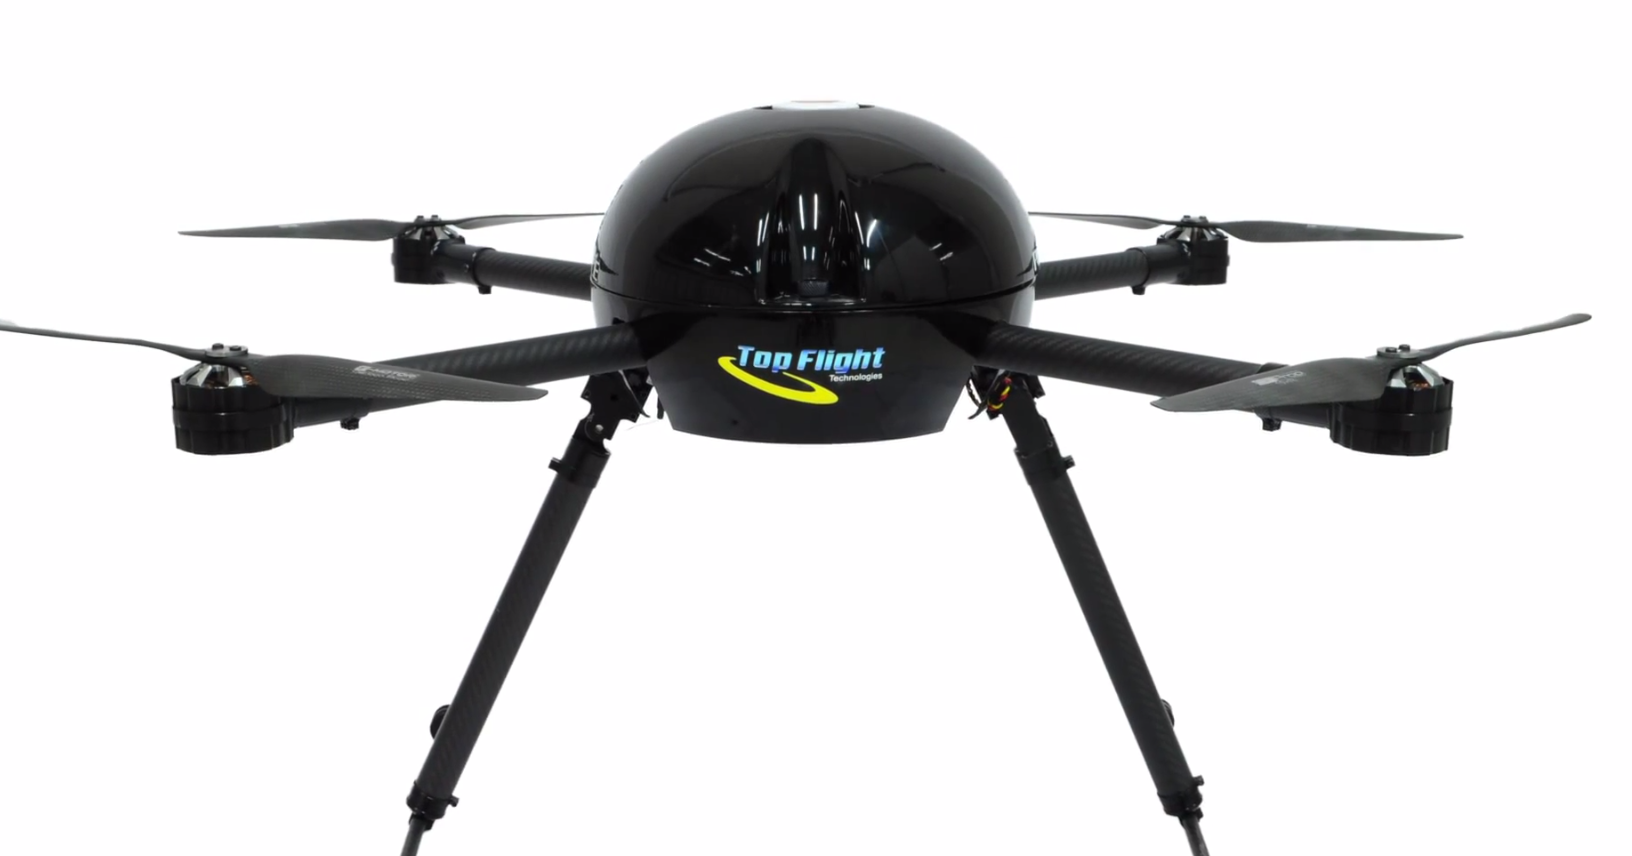 Top Flight Technology Wants to Make UAV Technology Actionable.